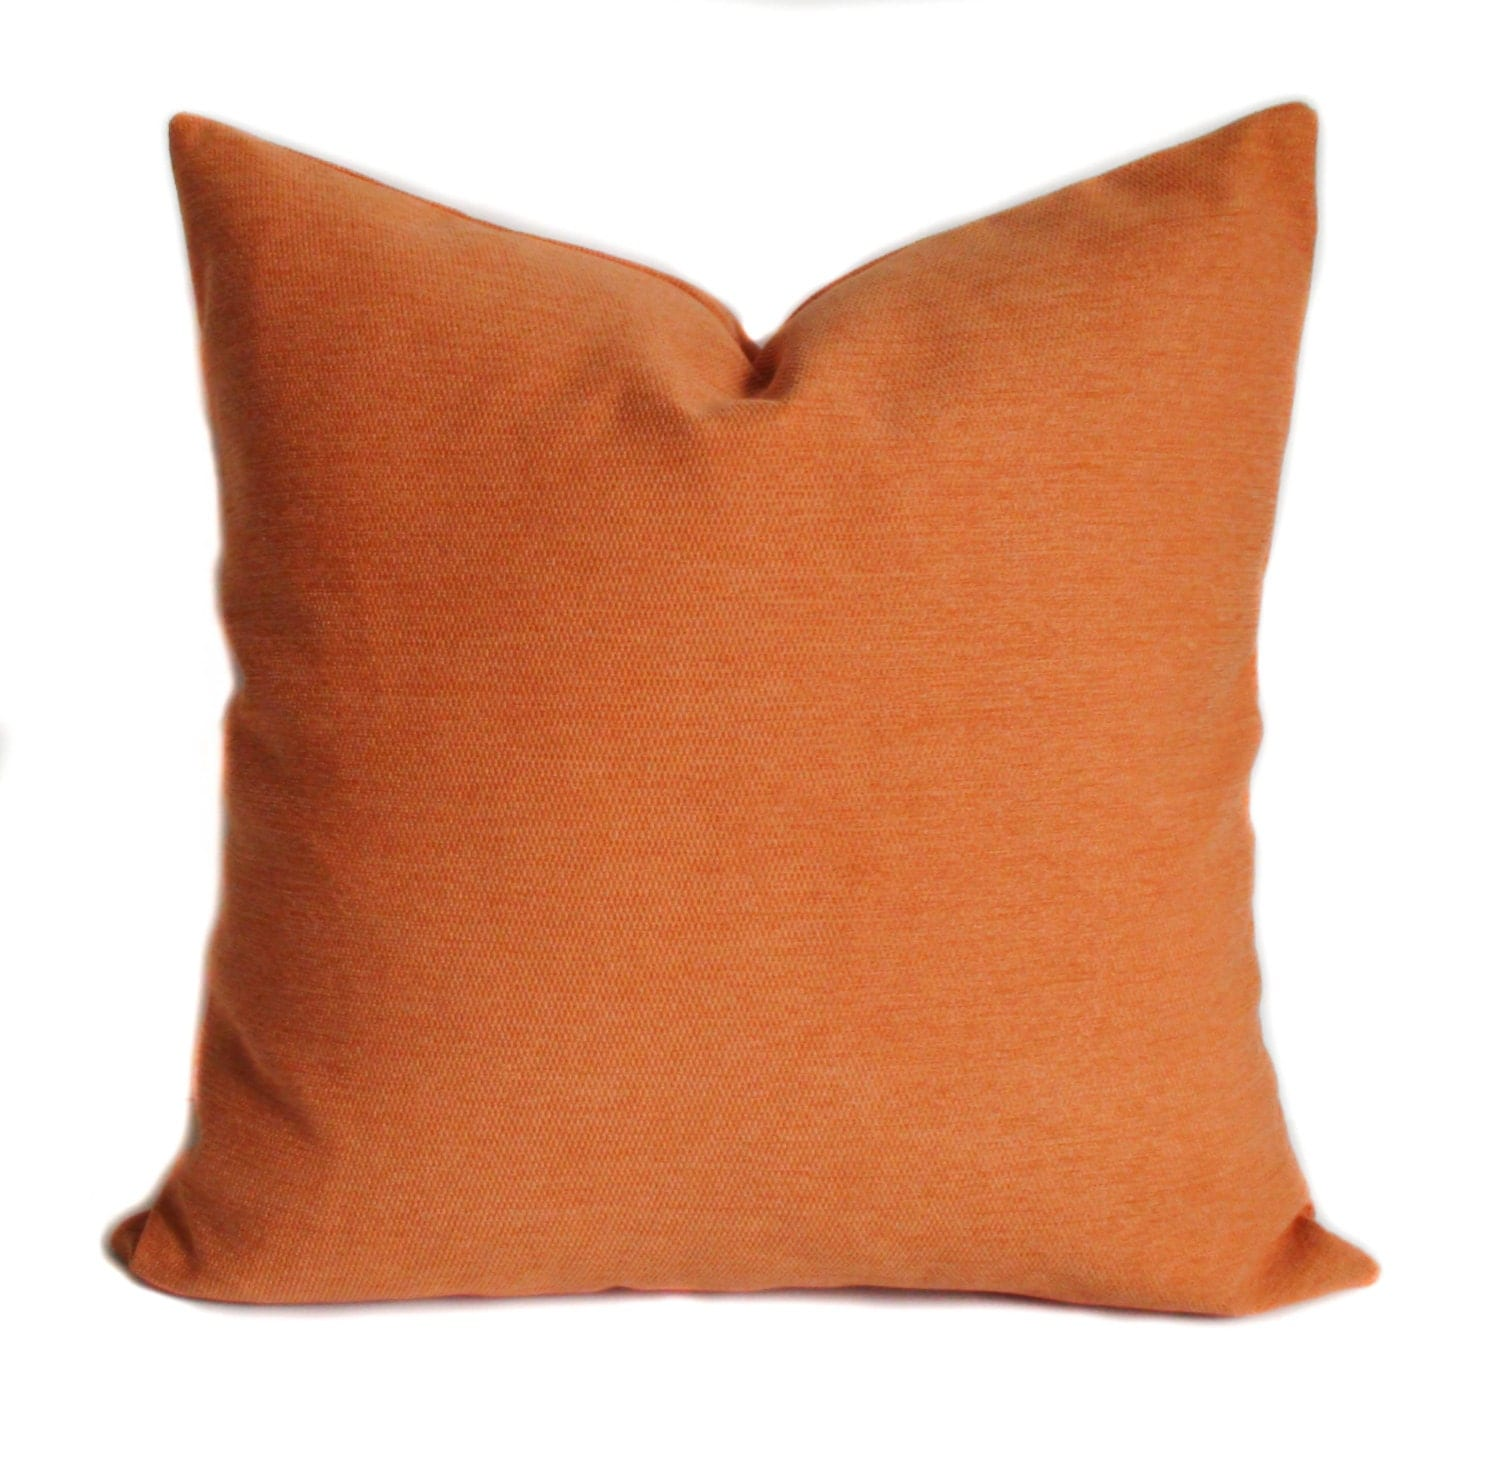 Throw Pillows With Orange : Orange pillow cover Orange pillows Throw pillow Couch